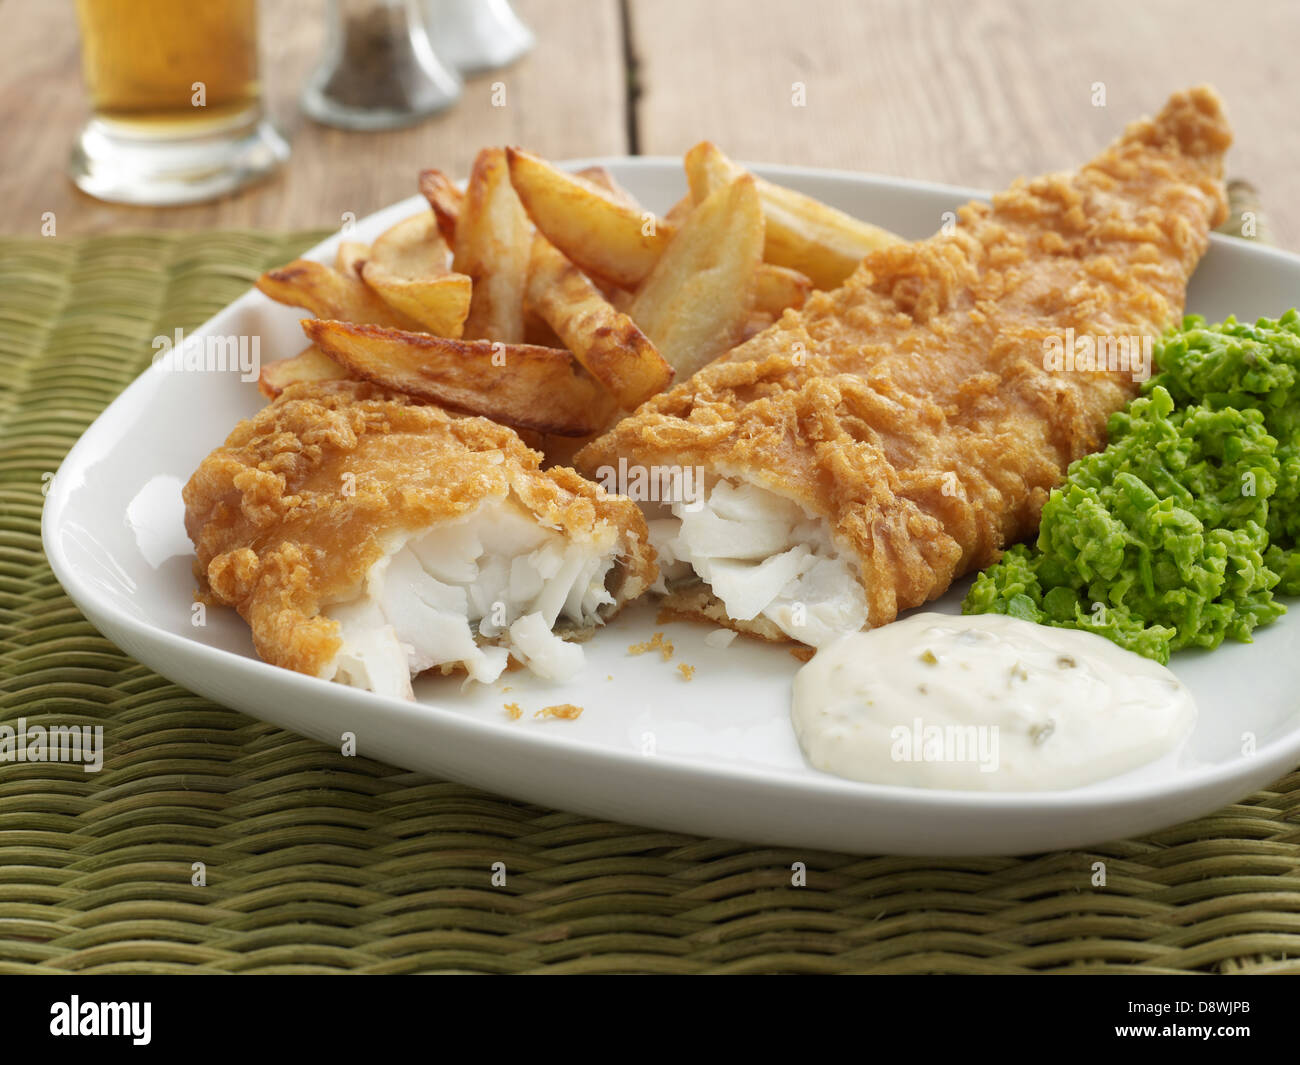 fish chips tartar sauce mushy peas dinner restaurant stock photo royalty free image 57111891. Black Bedroom Furniture Sets. Home Design Ideas